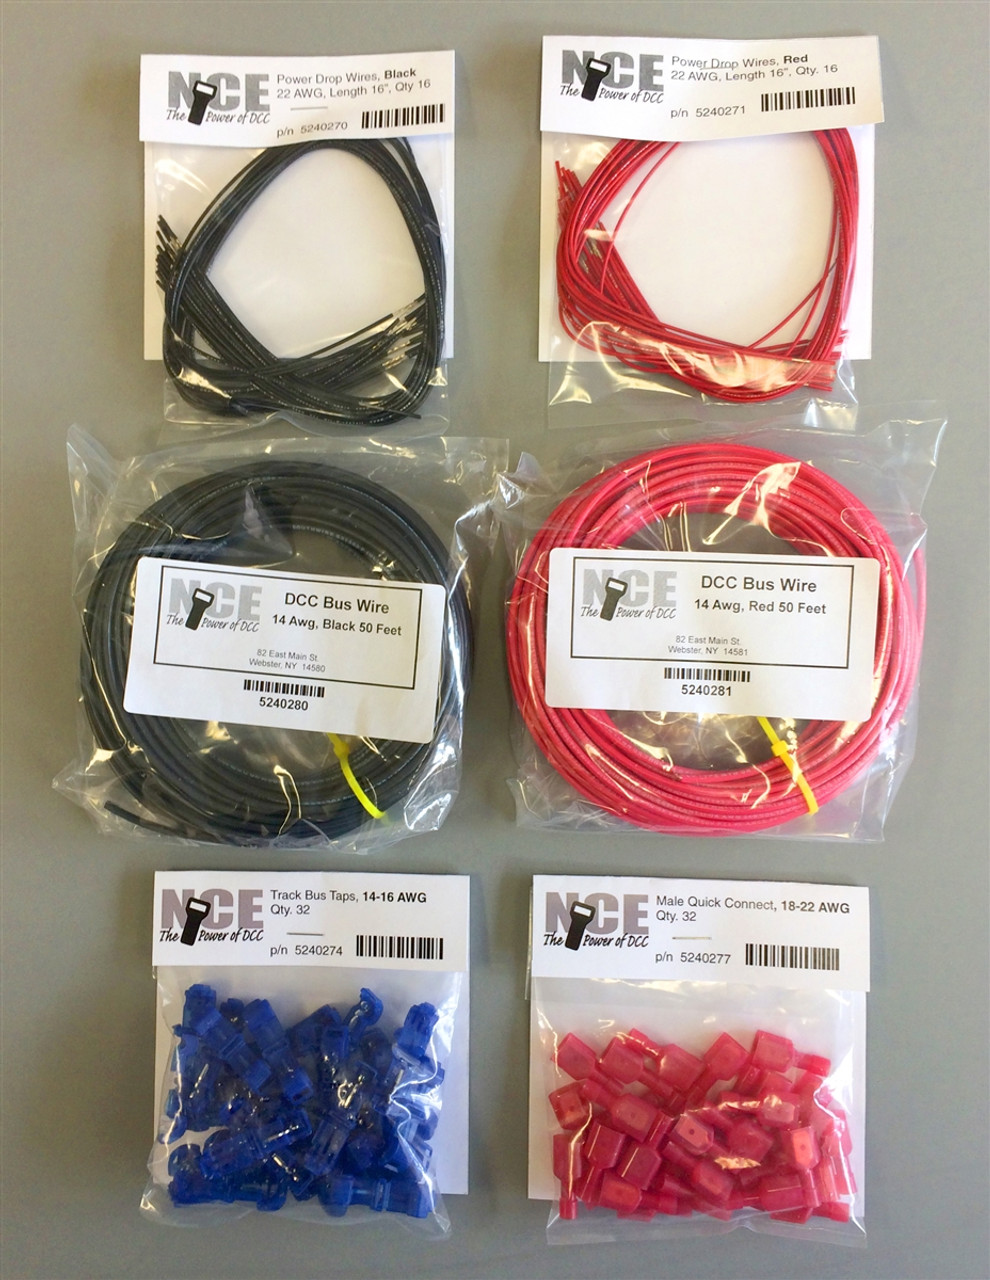 NCE 524268 DCC Main Bus Wiring Kit For Typical 50 Foot Double Track Mainline